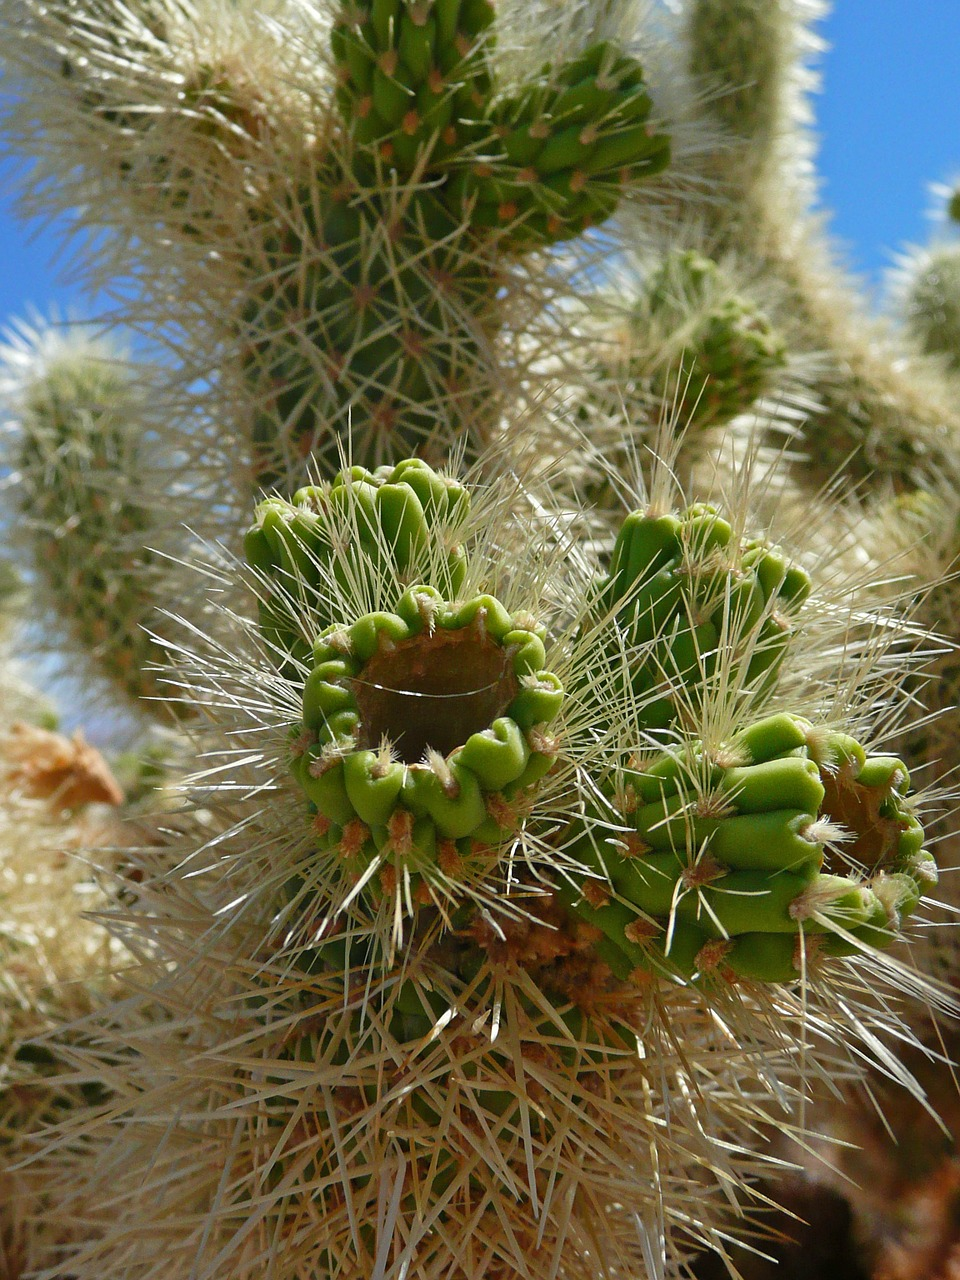 cactus green spines free photo